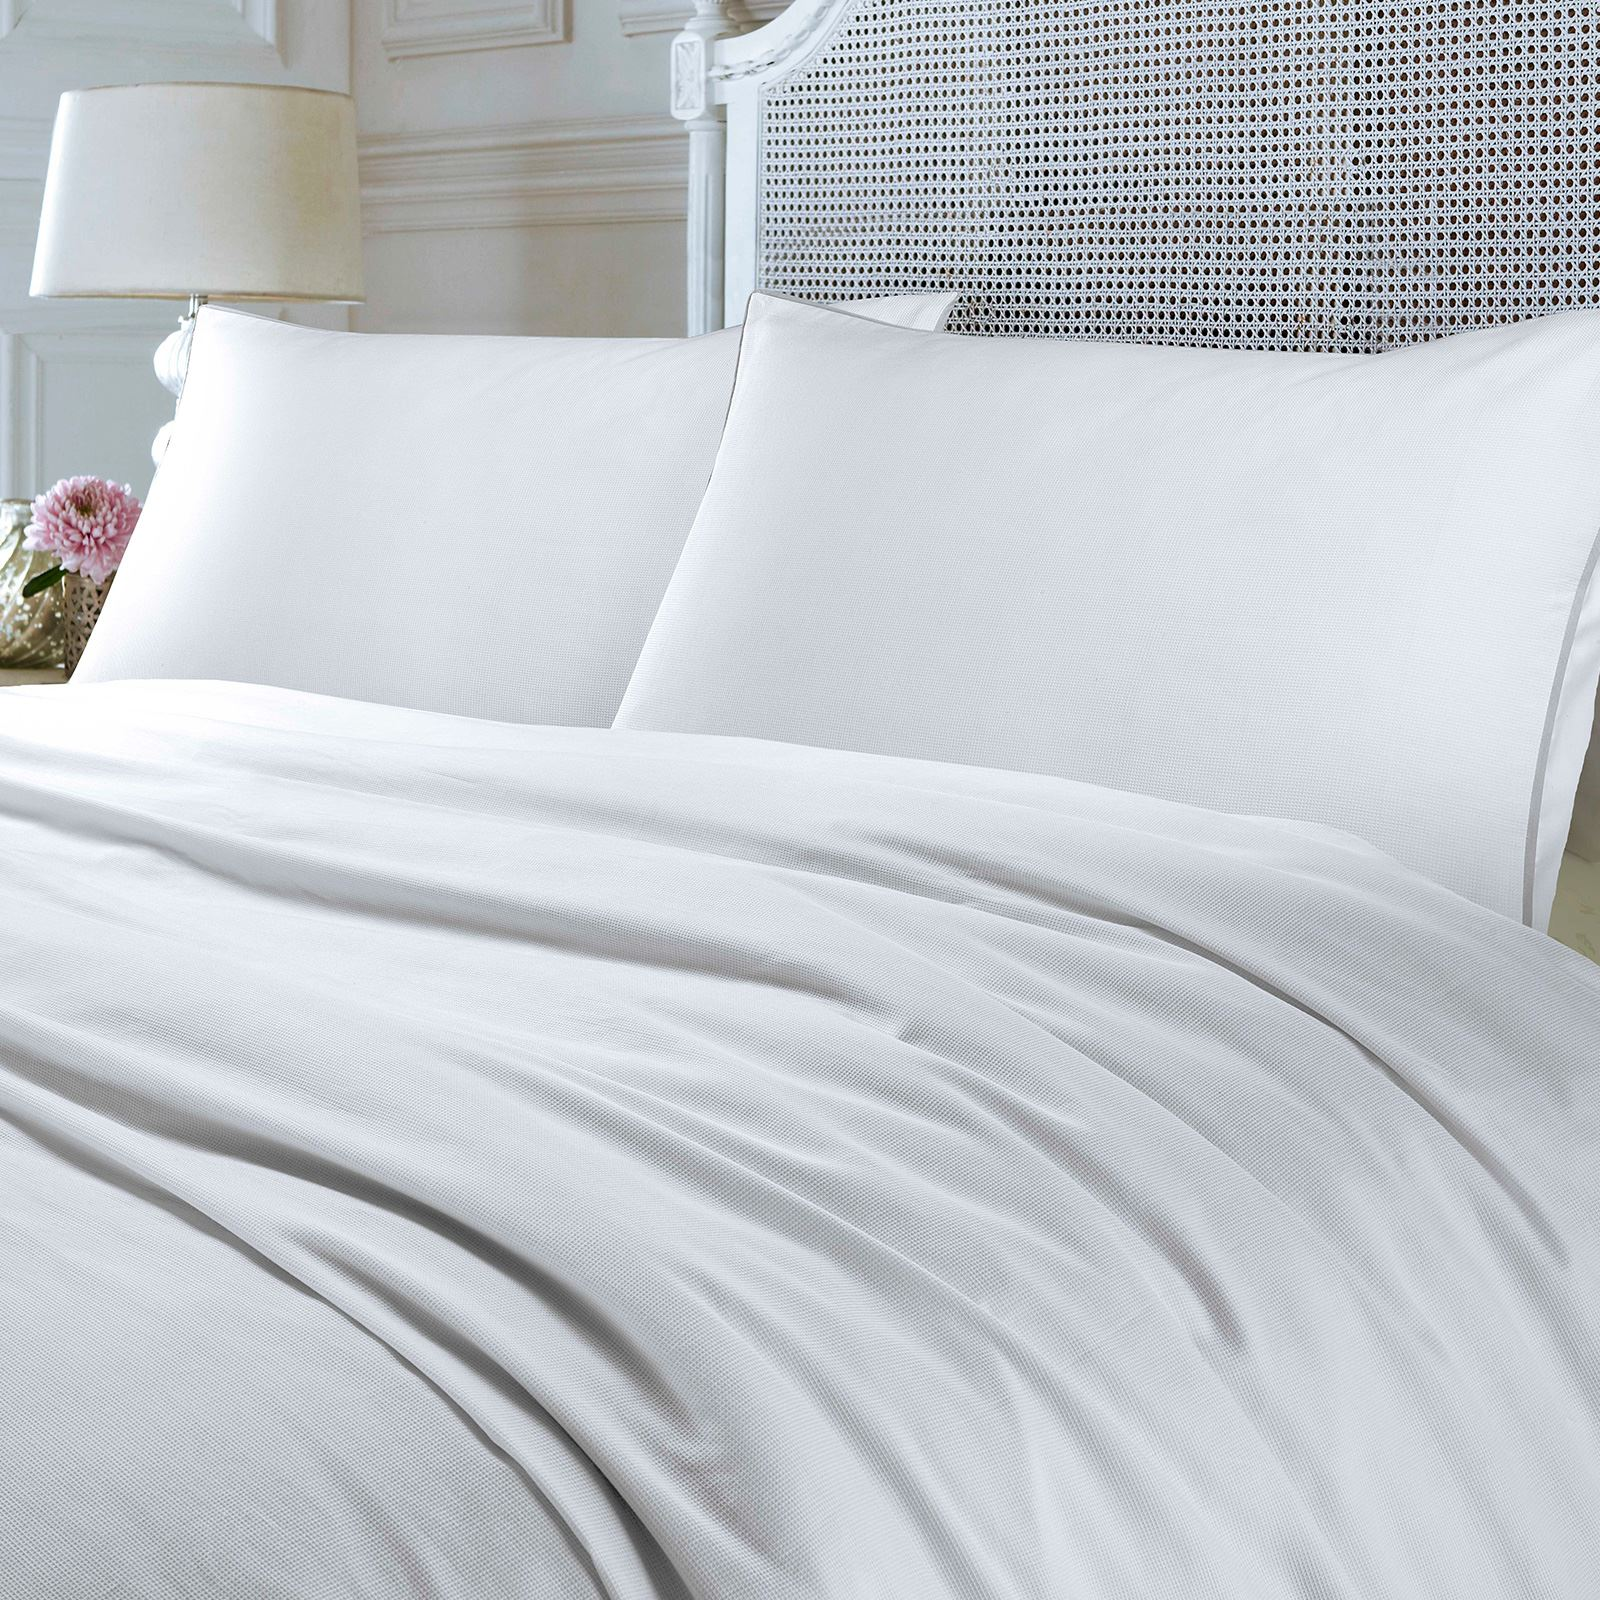 Luxury-200-Thread-Woven-Waffle-Checked-100-Cotton-Quilt-Duvet-Cover-Set-White thumbnail 4